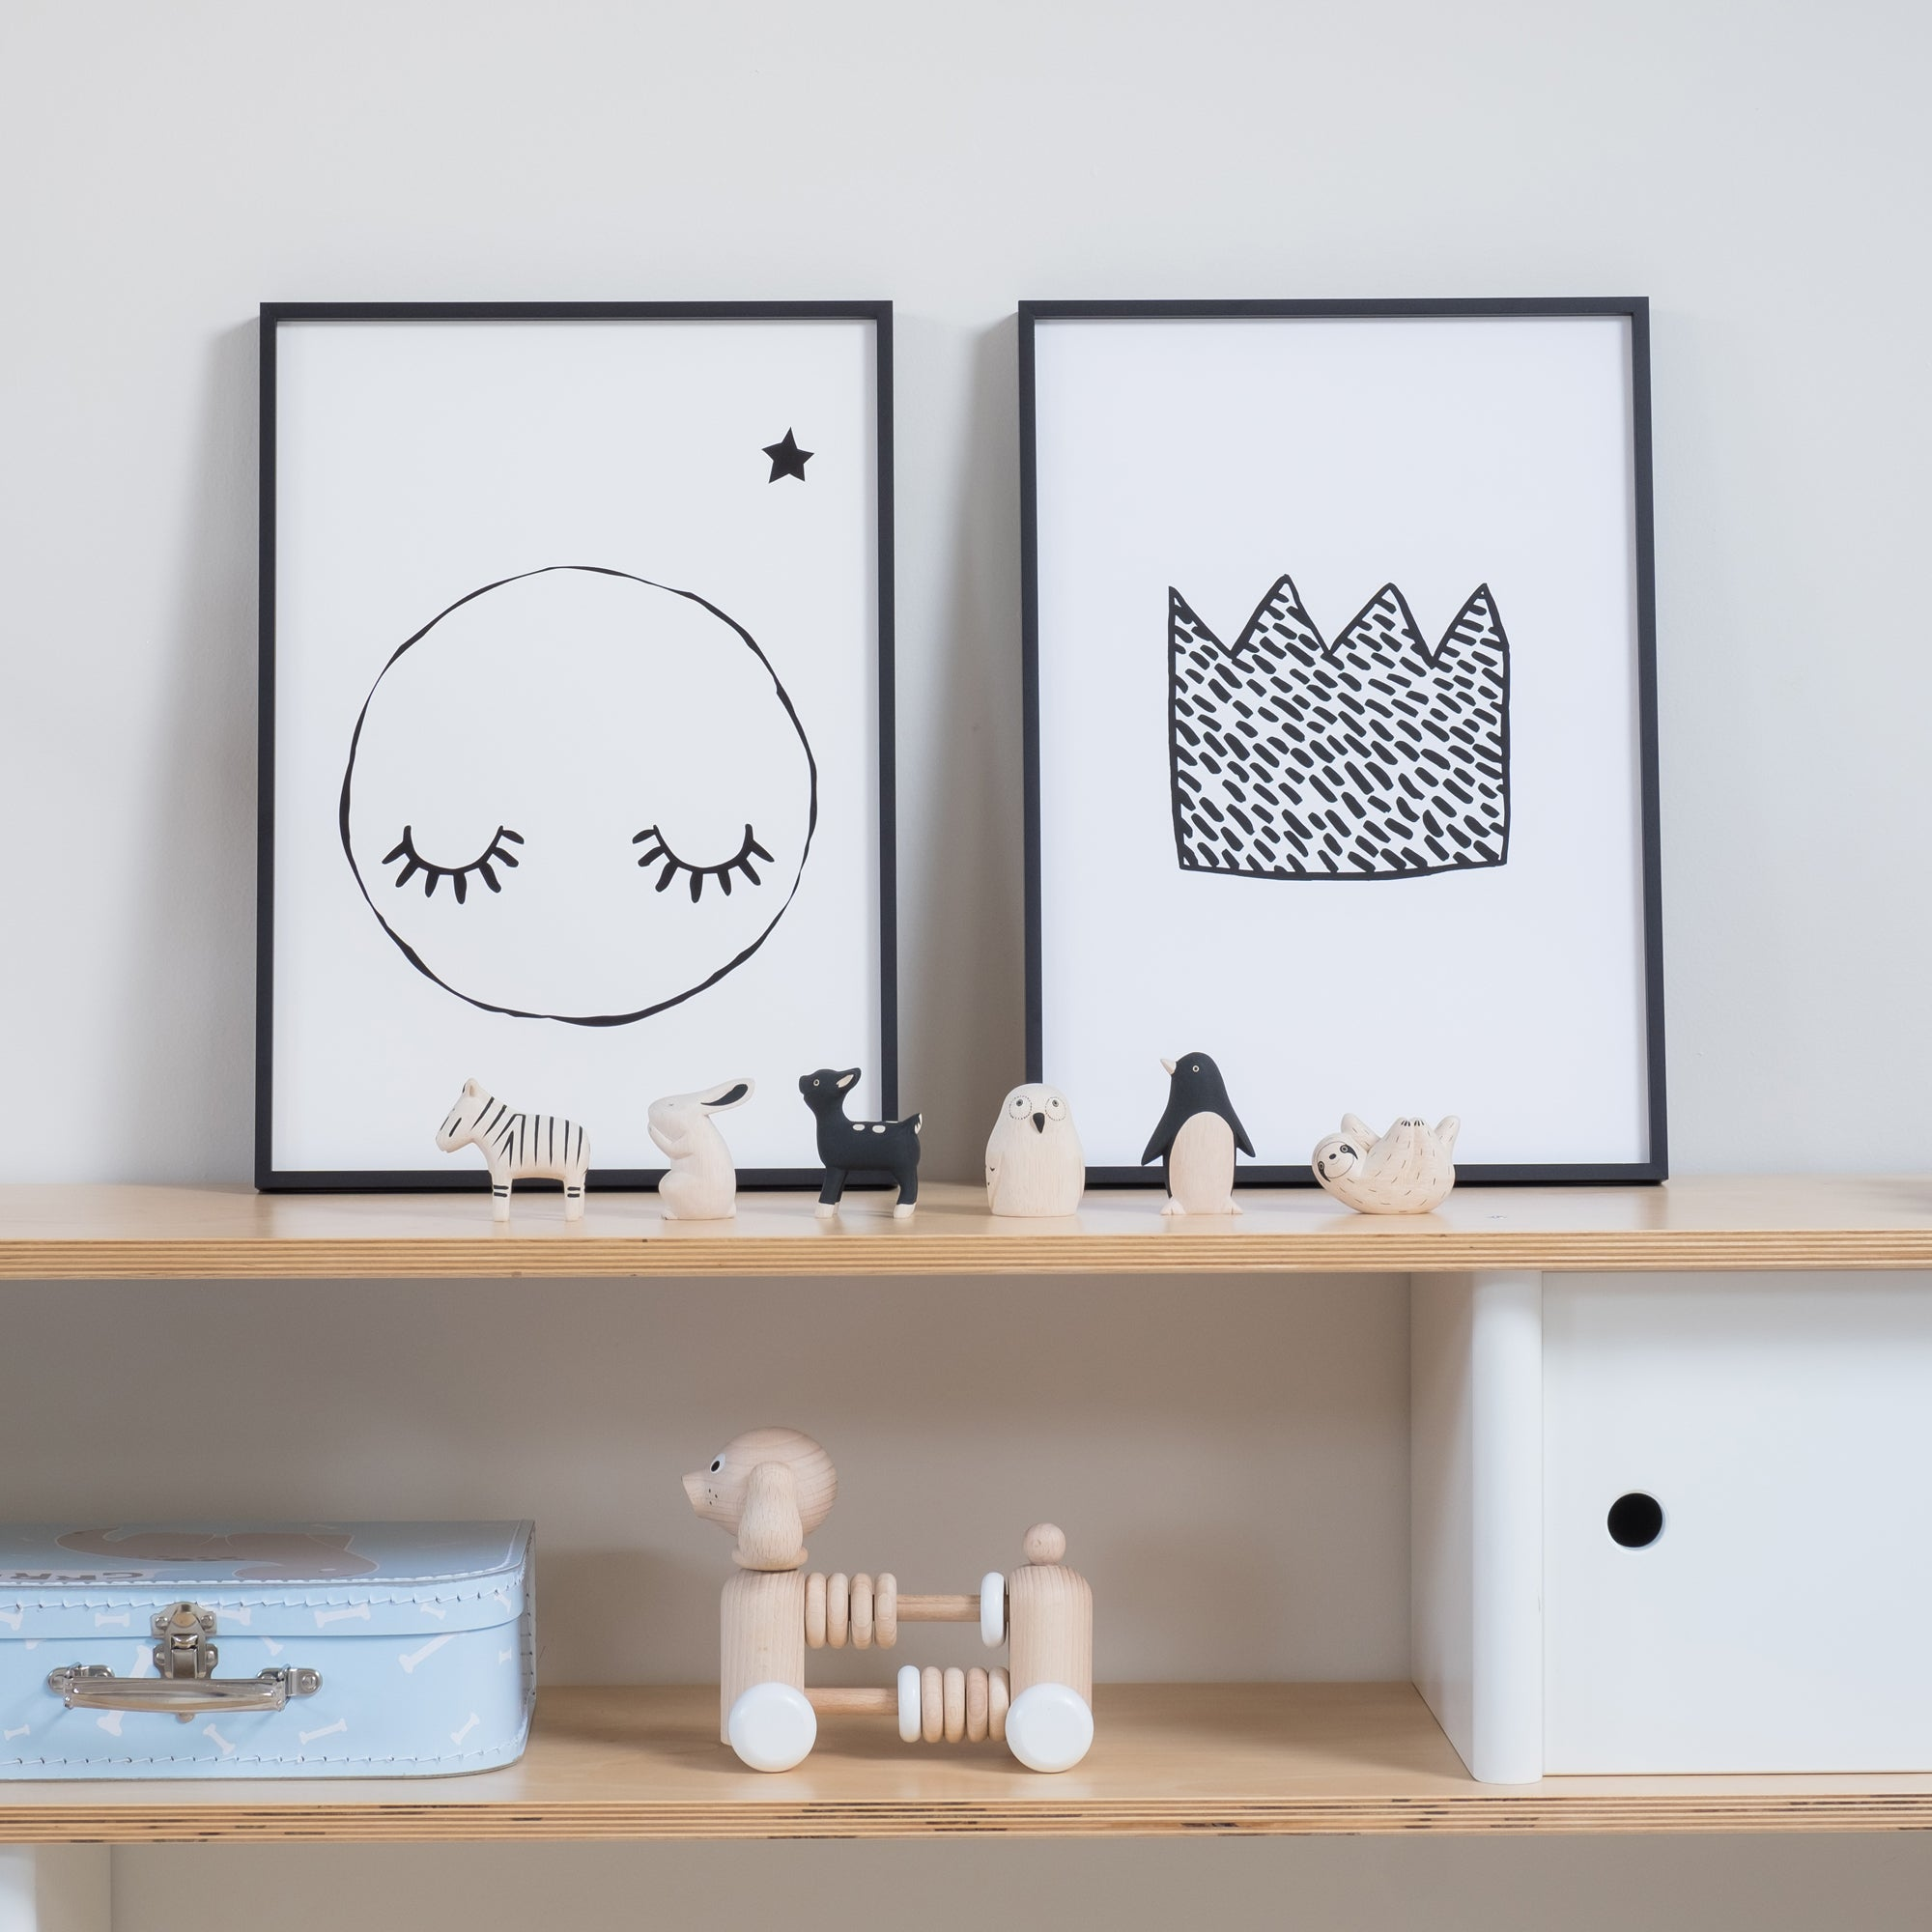 Pole-Pole Animals and A3 Prints by Rory and The Bean and Wonder and Rah, available at Bobby Rabbit.